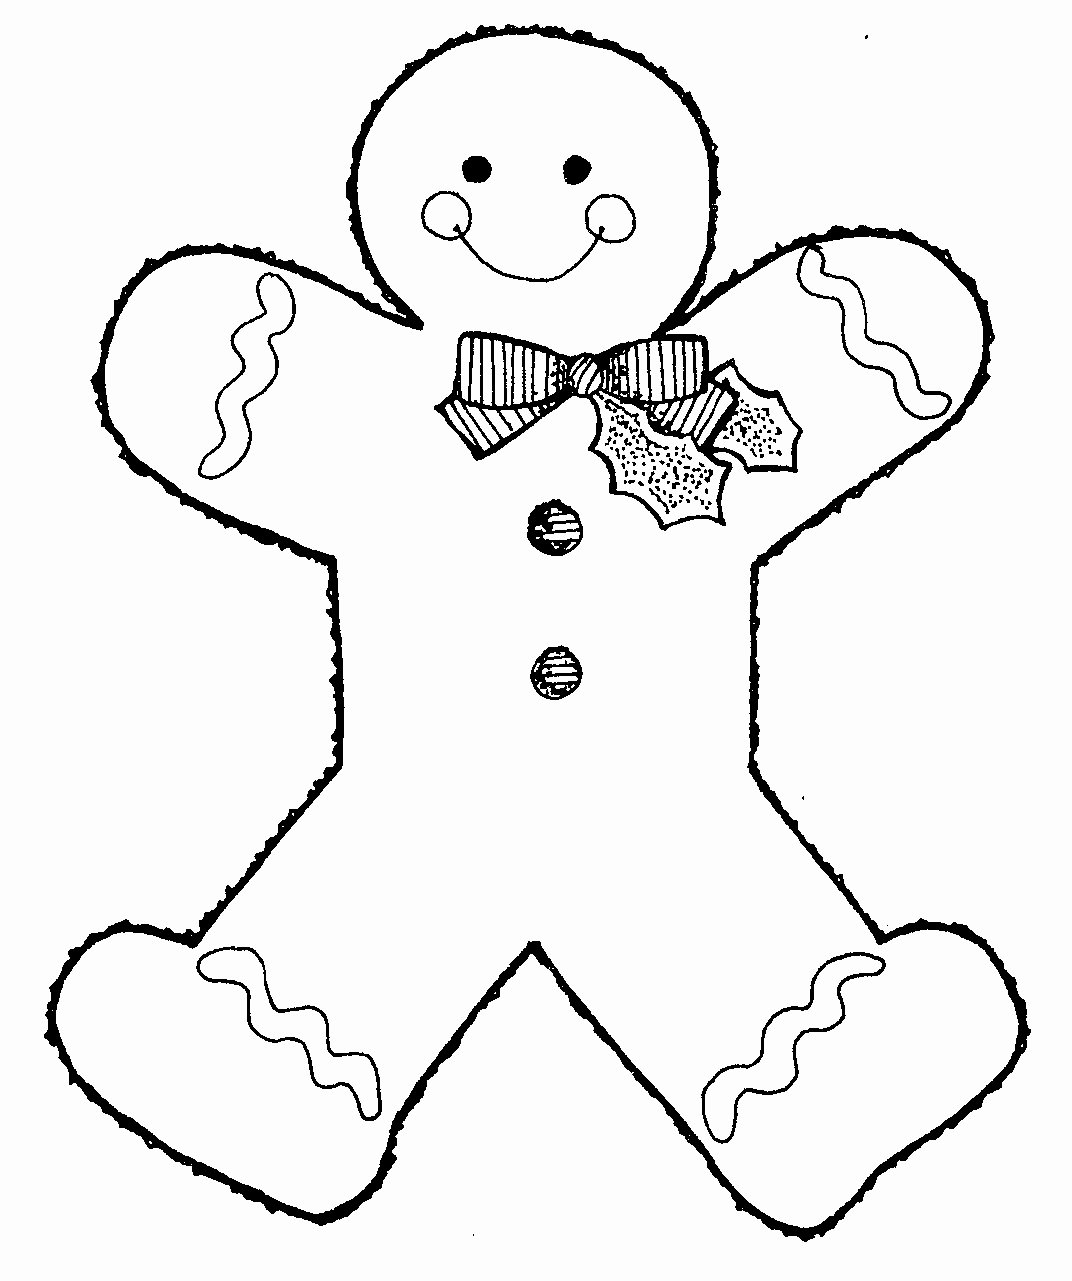 Boy and Girl Template Inspirational Free Printable Gingerbread Man Coloring Pages for Kids